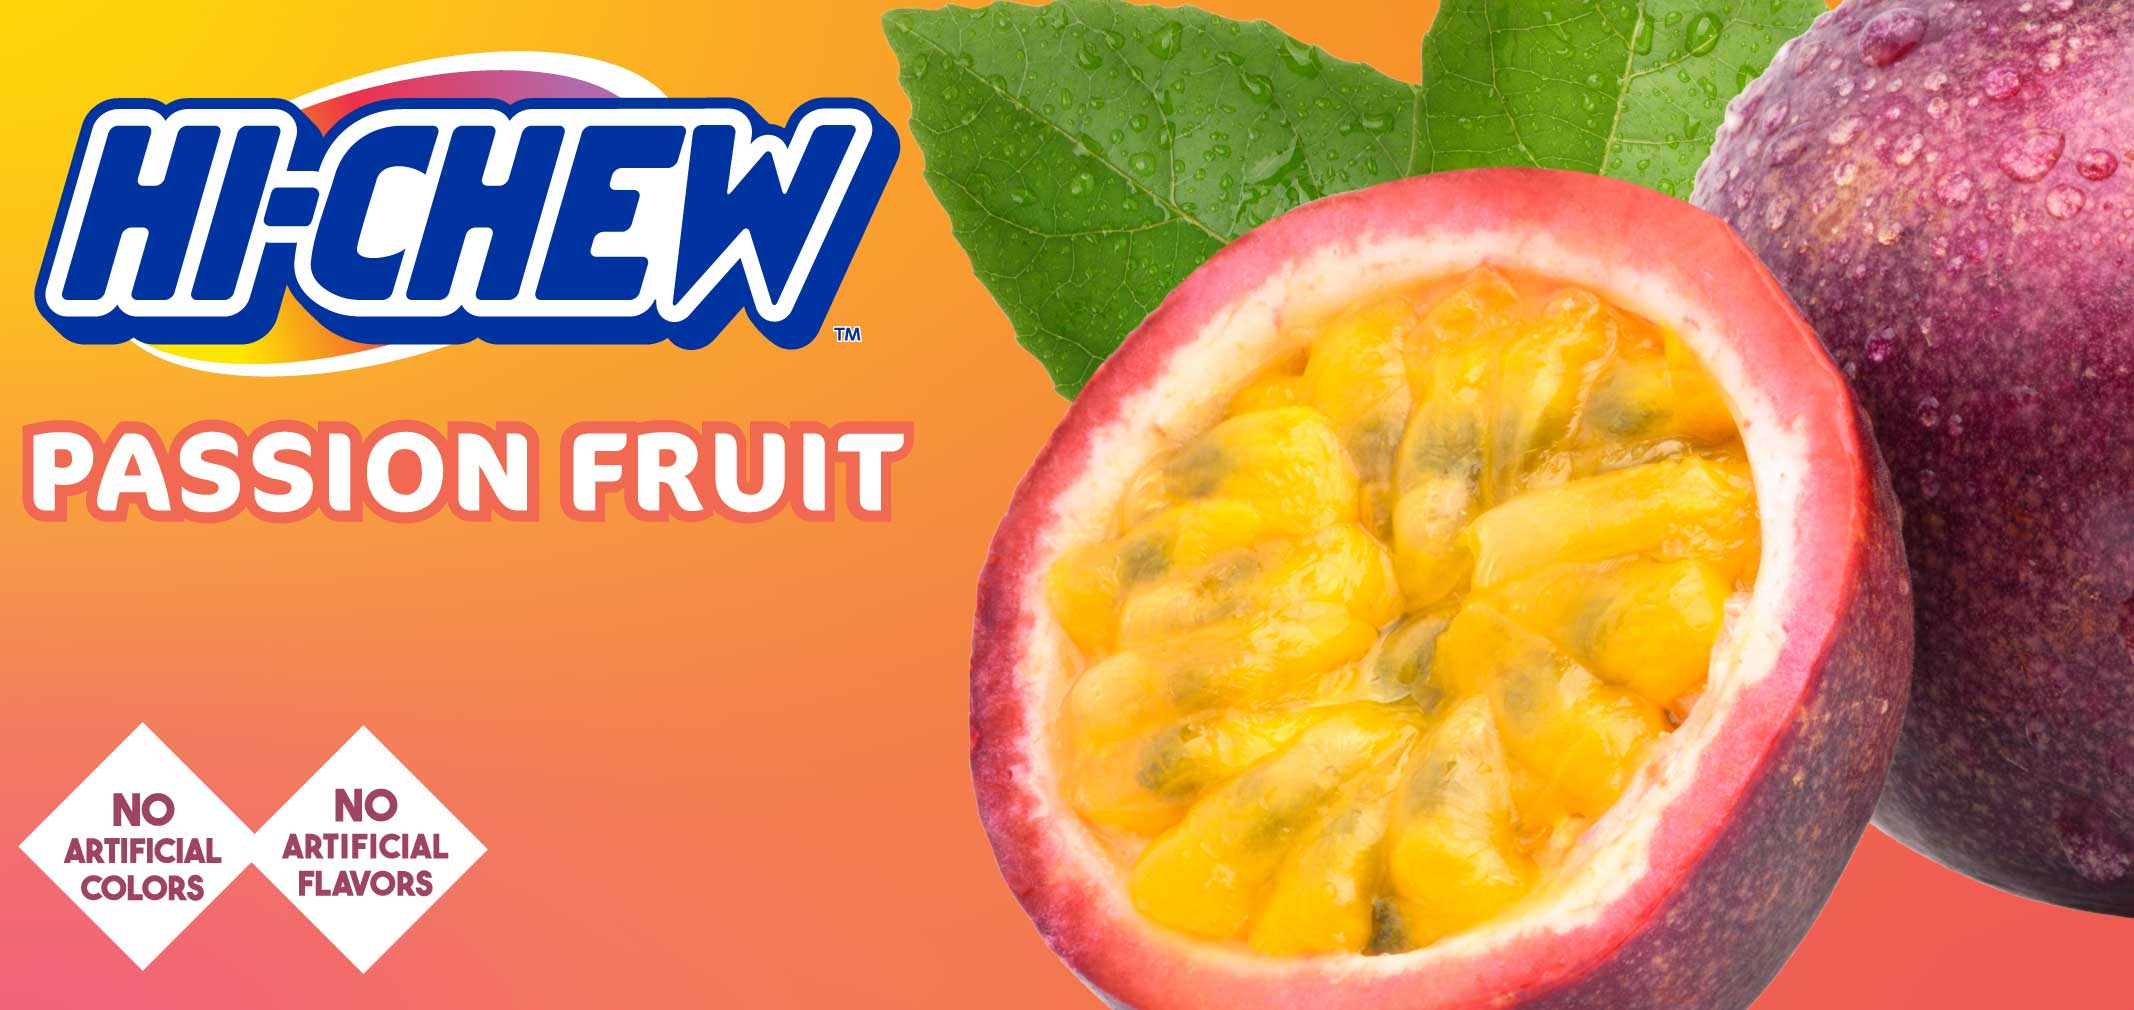 HI-CHEW passionfruit label image